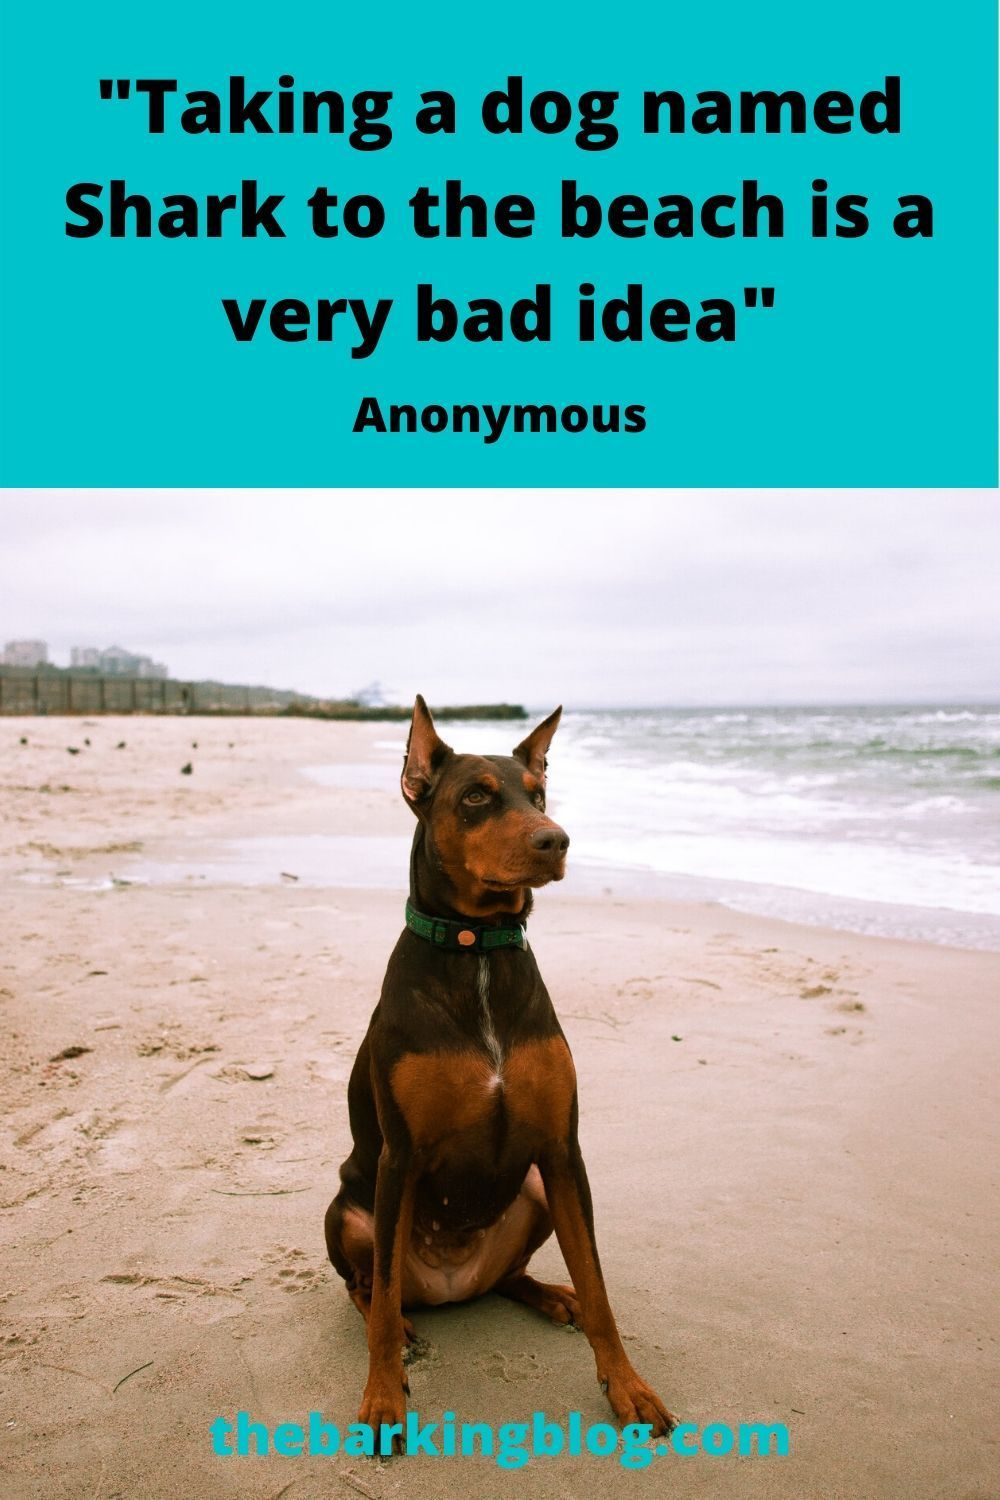 Funny Dog Quote And Dog Meme Taking A Dog Named Shark To The Beach Is A Very Bad Idea In 2020 Dog Quotes Funny Dog Quotes Dog Memes